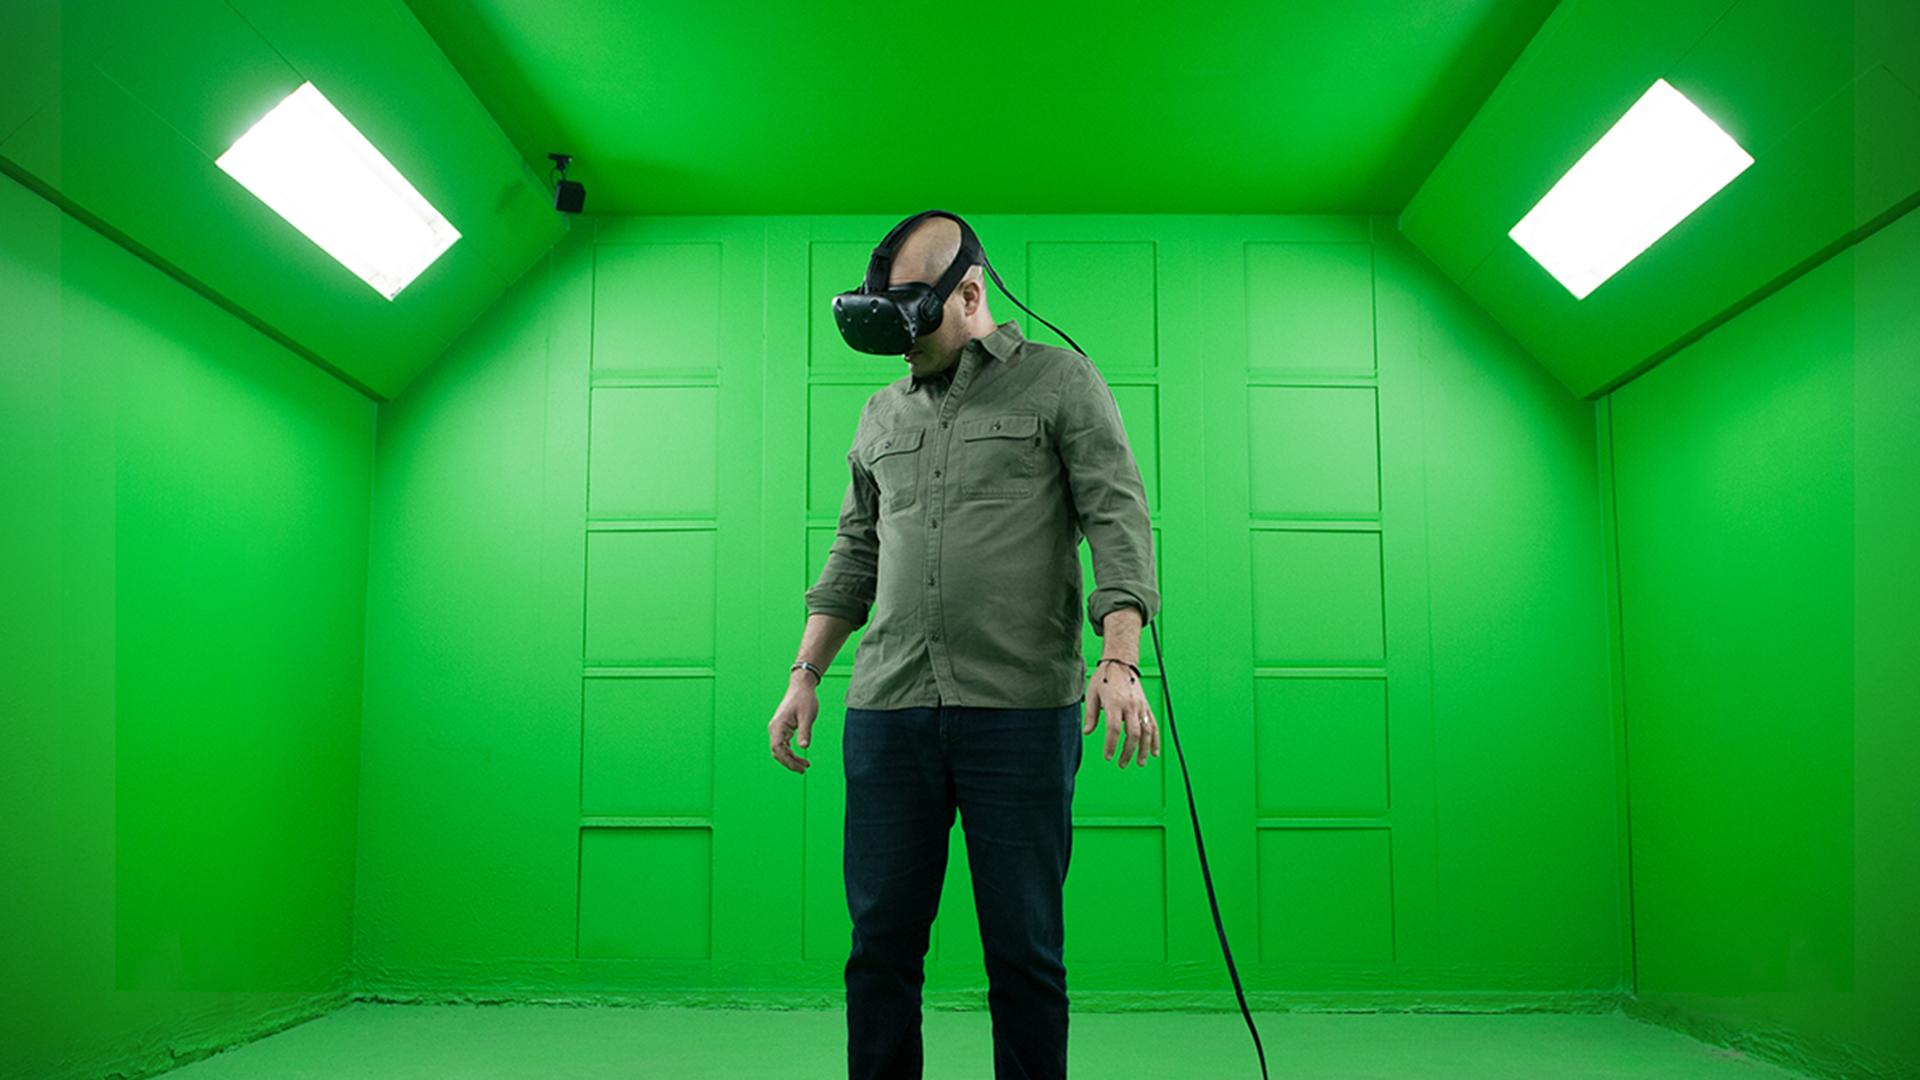 Foundry software making virtual, augmented and mixed reality a success